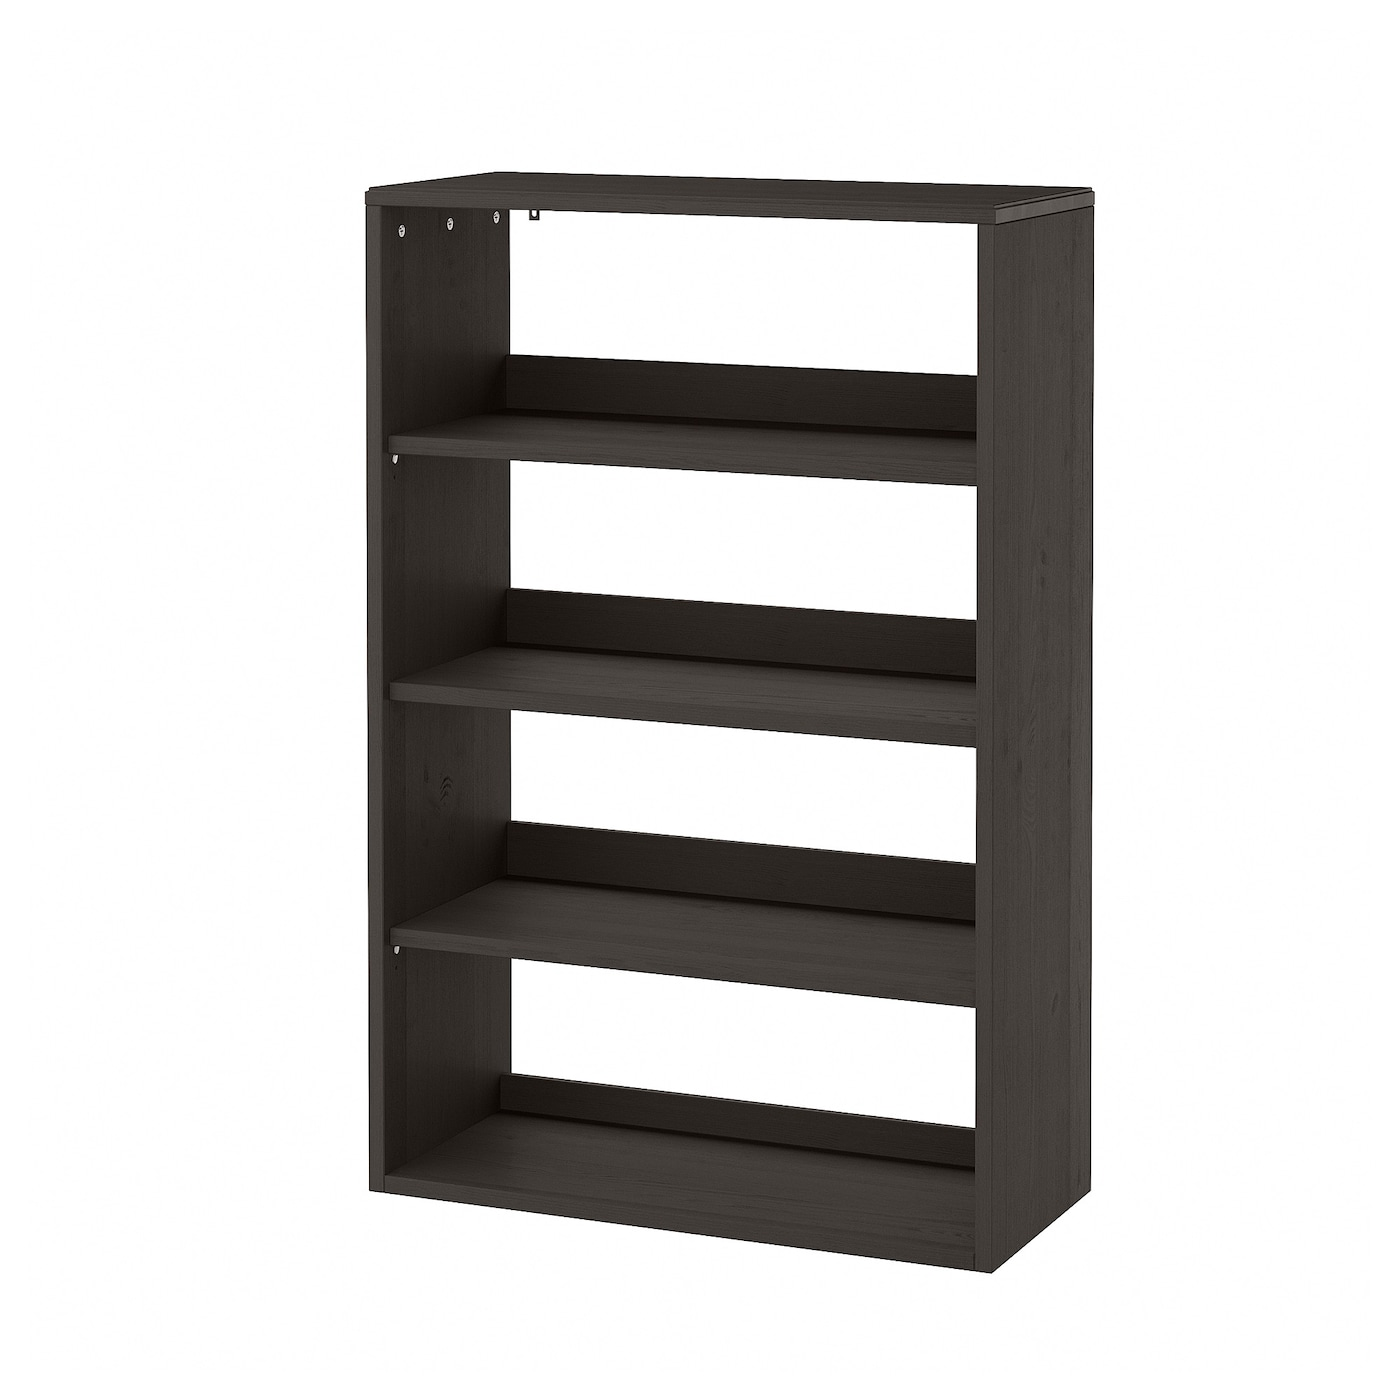 Havsta Shelving Unit Dark Brown Ikea Switzerland